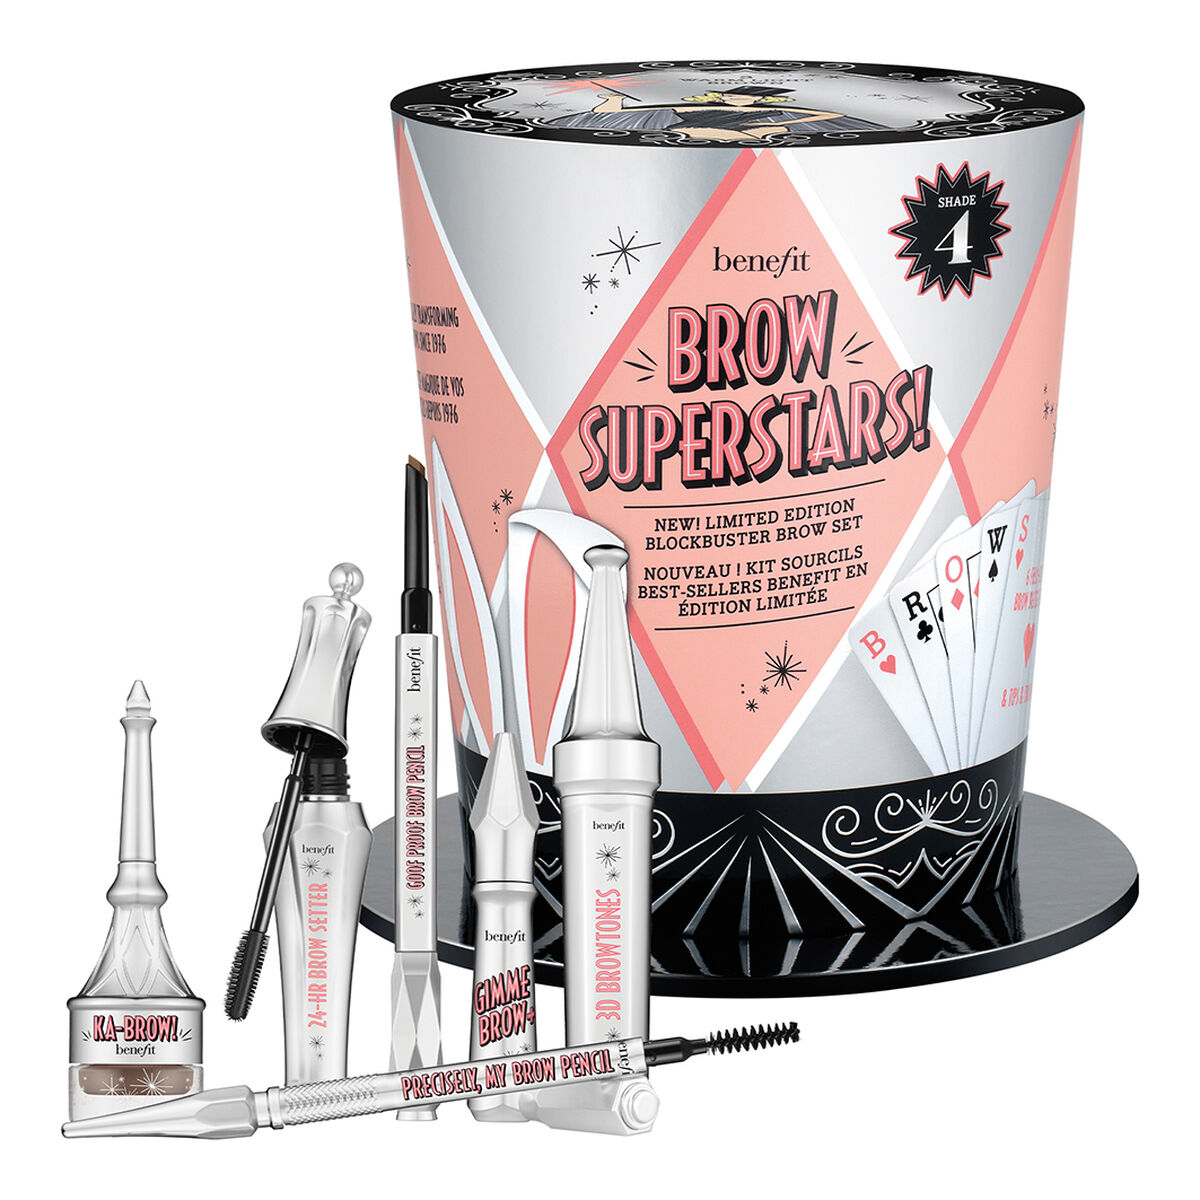 Kit de cejas completo Brow Superstars! de Benefit Cosmetics